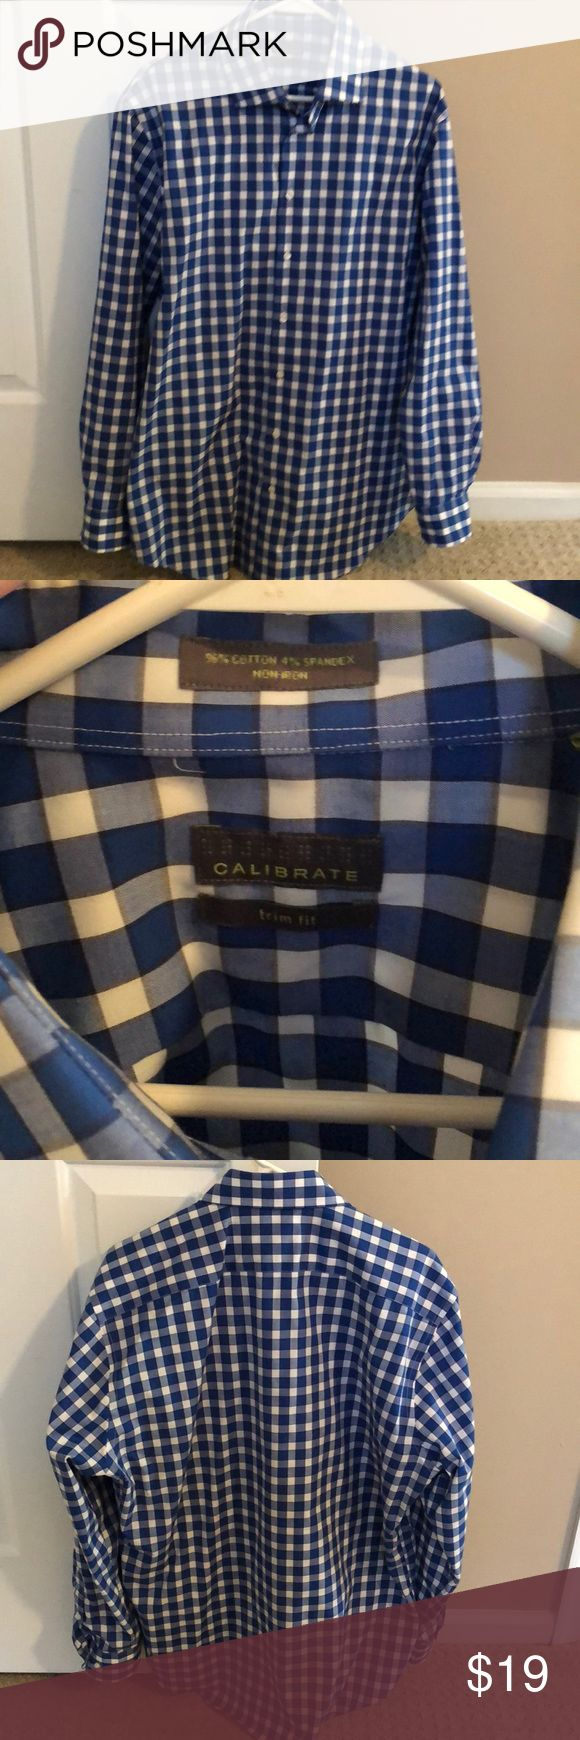 Calibrate Blue Men's Dress Shirt Non Iron Trim Fit Calibrate Men's plaid Blue Dress Shirt, size Large, Non Iron, Trim Fit, 96% cotton, 4% spandex.  Great condition, worn twice.  Any questions, just ask.  Bundle with other items of mine from my closet and save more! Calibrate Shirts Dress Shirts